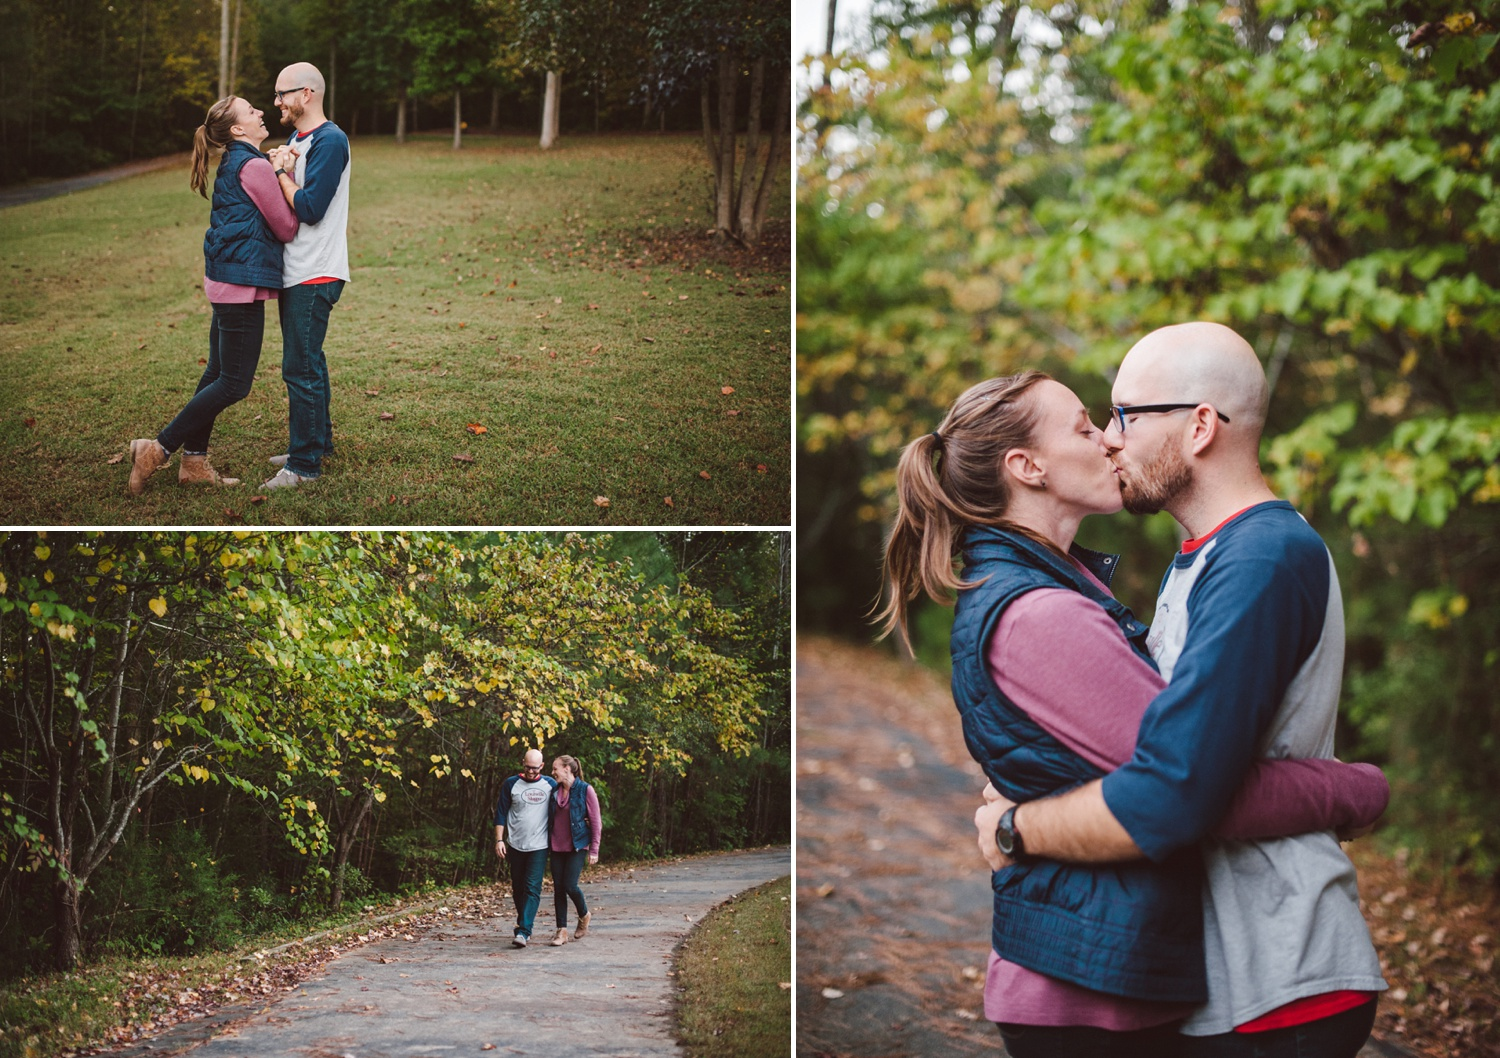 DocumentaryFamilyPhotography-ChadLanghoff-AmberLanghoff-LanghoffCreative-AllisonFowler-Oct2015-20-photo.jpg